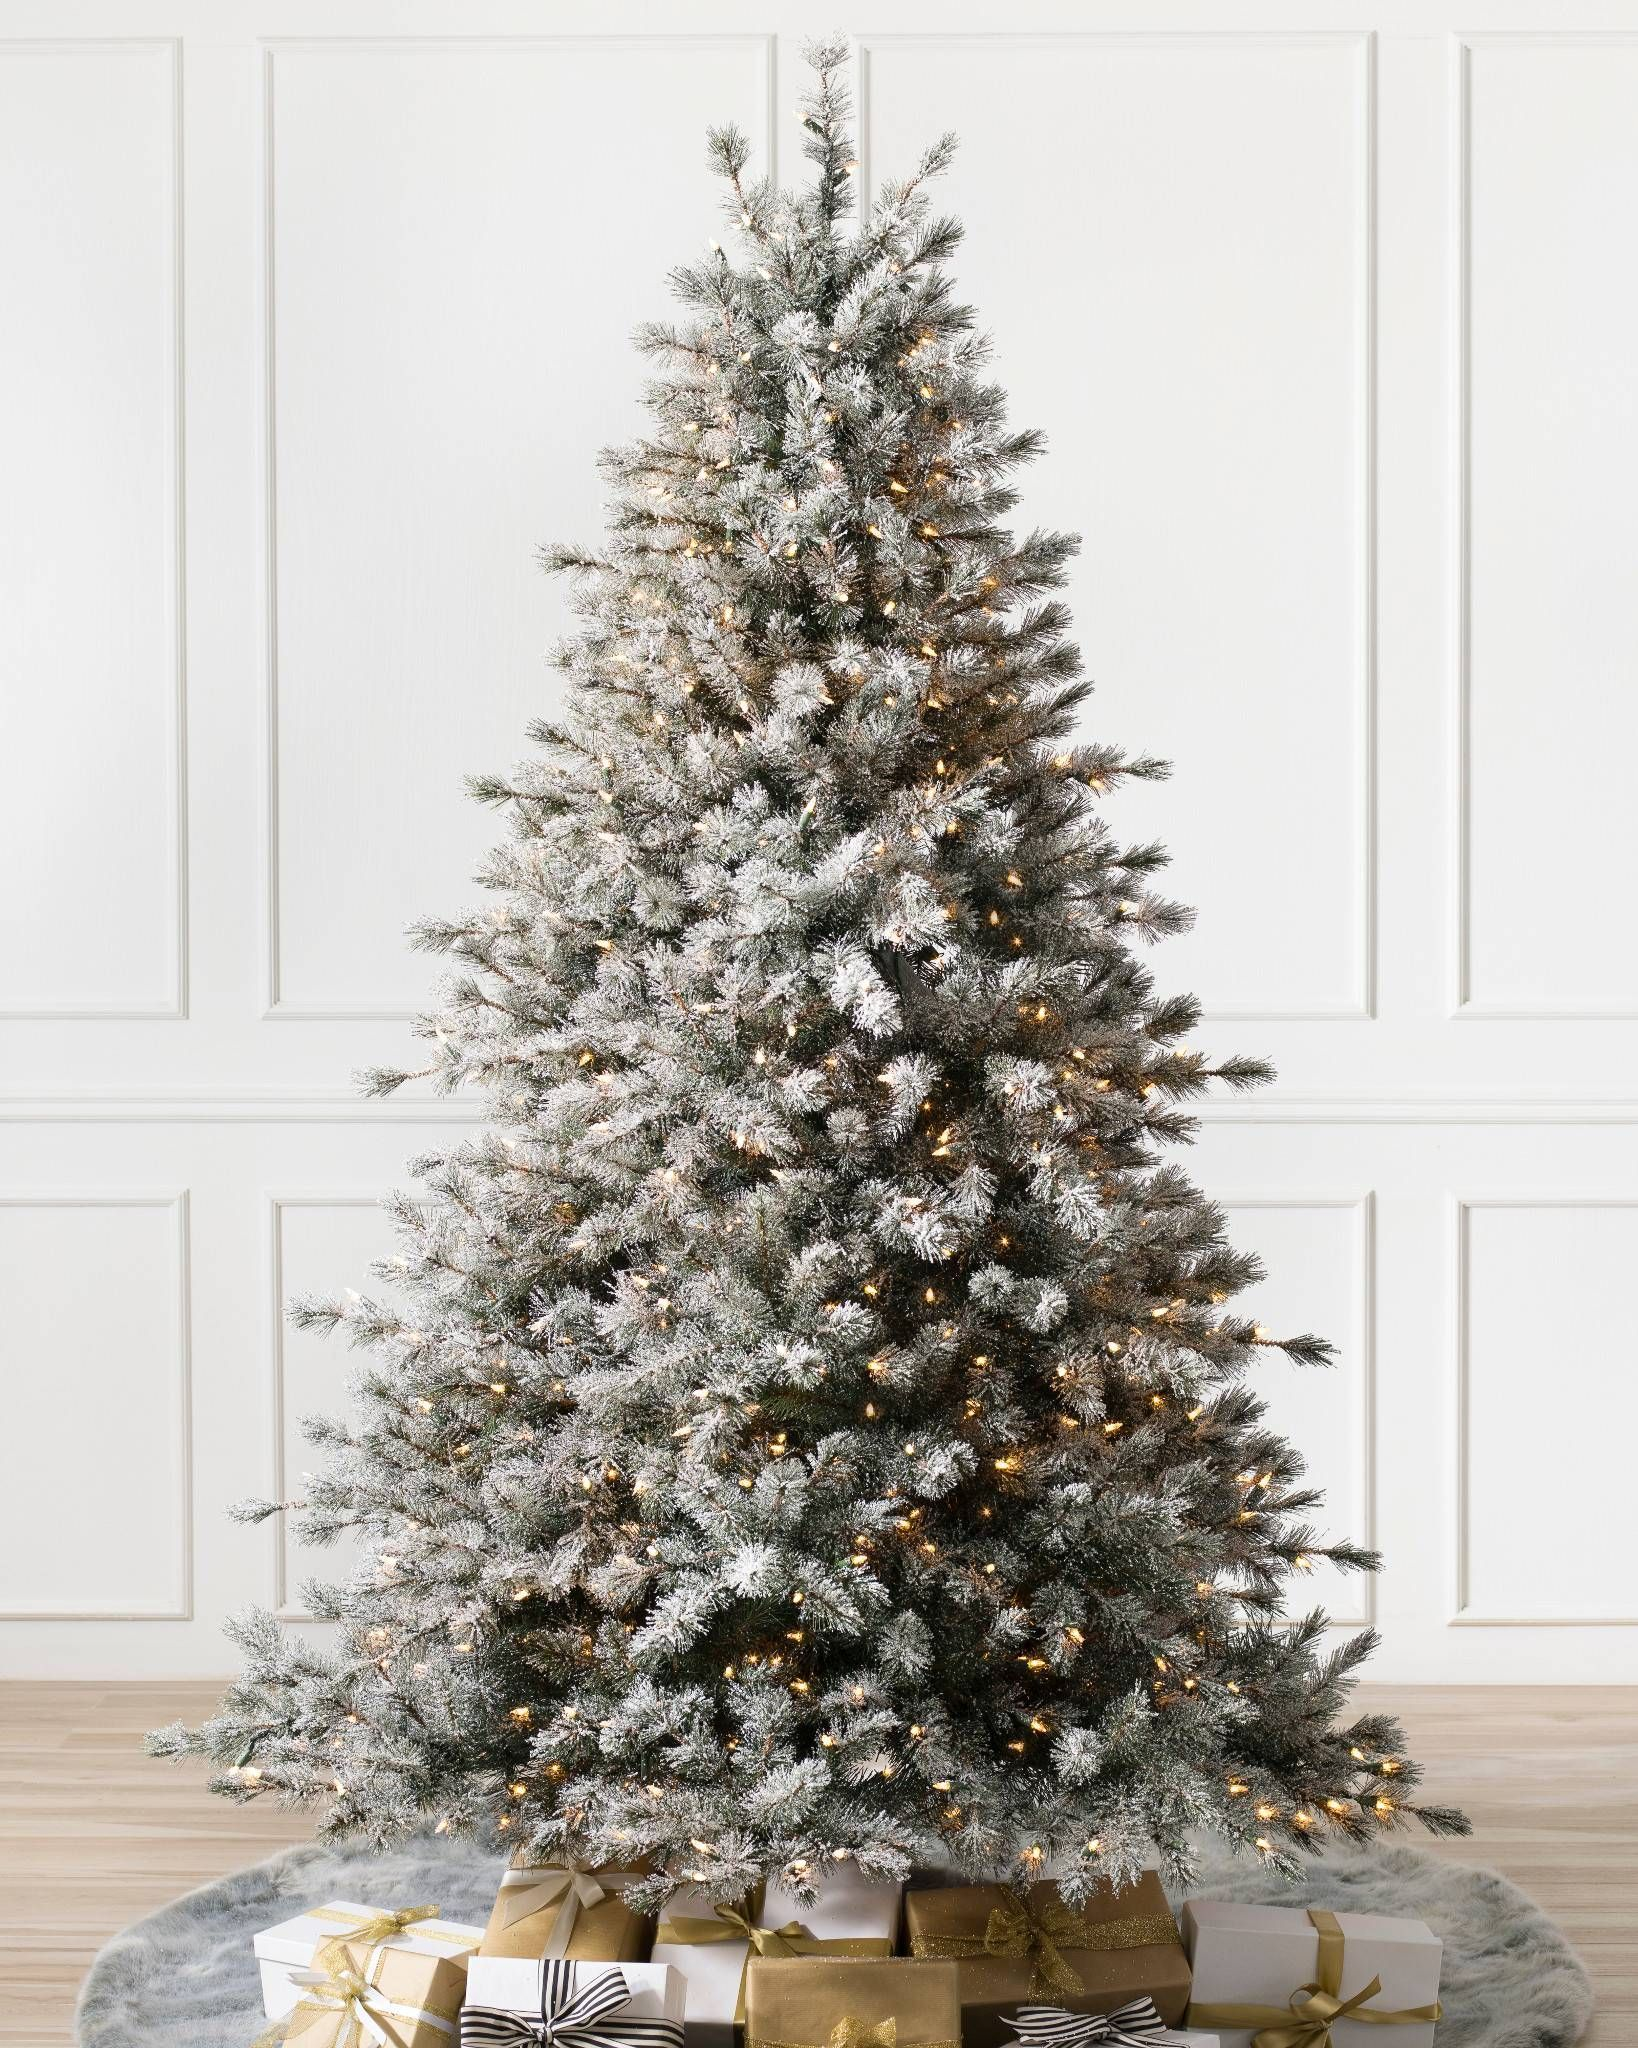 Frosted Sugar Pine Artificial Christmas Trees Balsam Hill In 2020 Realistic Christmas Trees Flocked Christmas Trees Best Artificial Christmas Trees